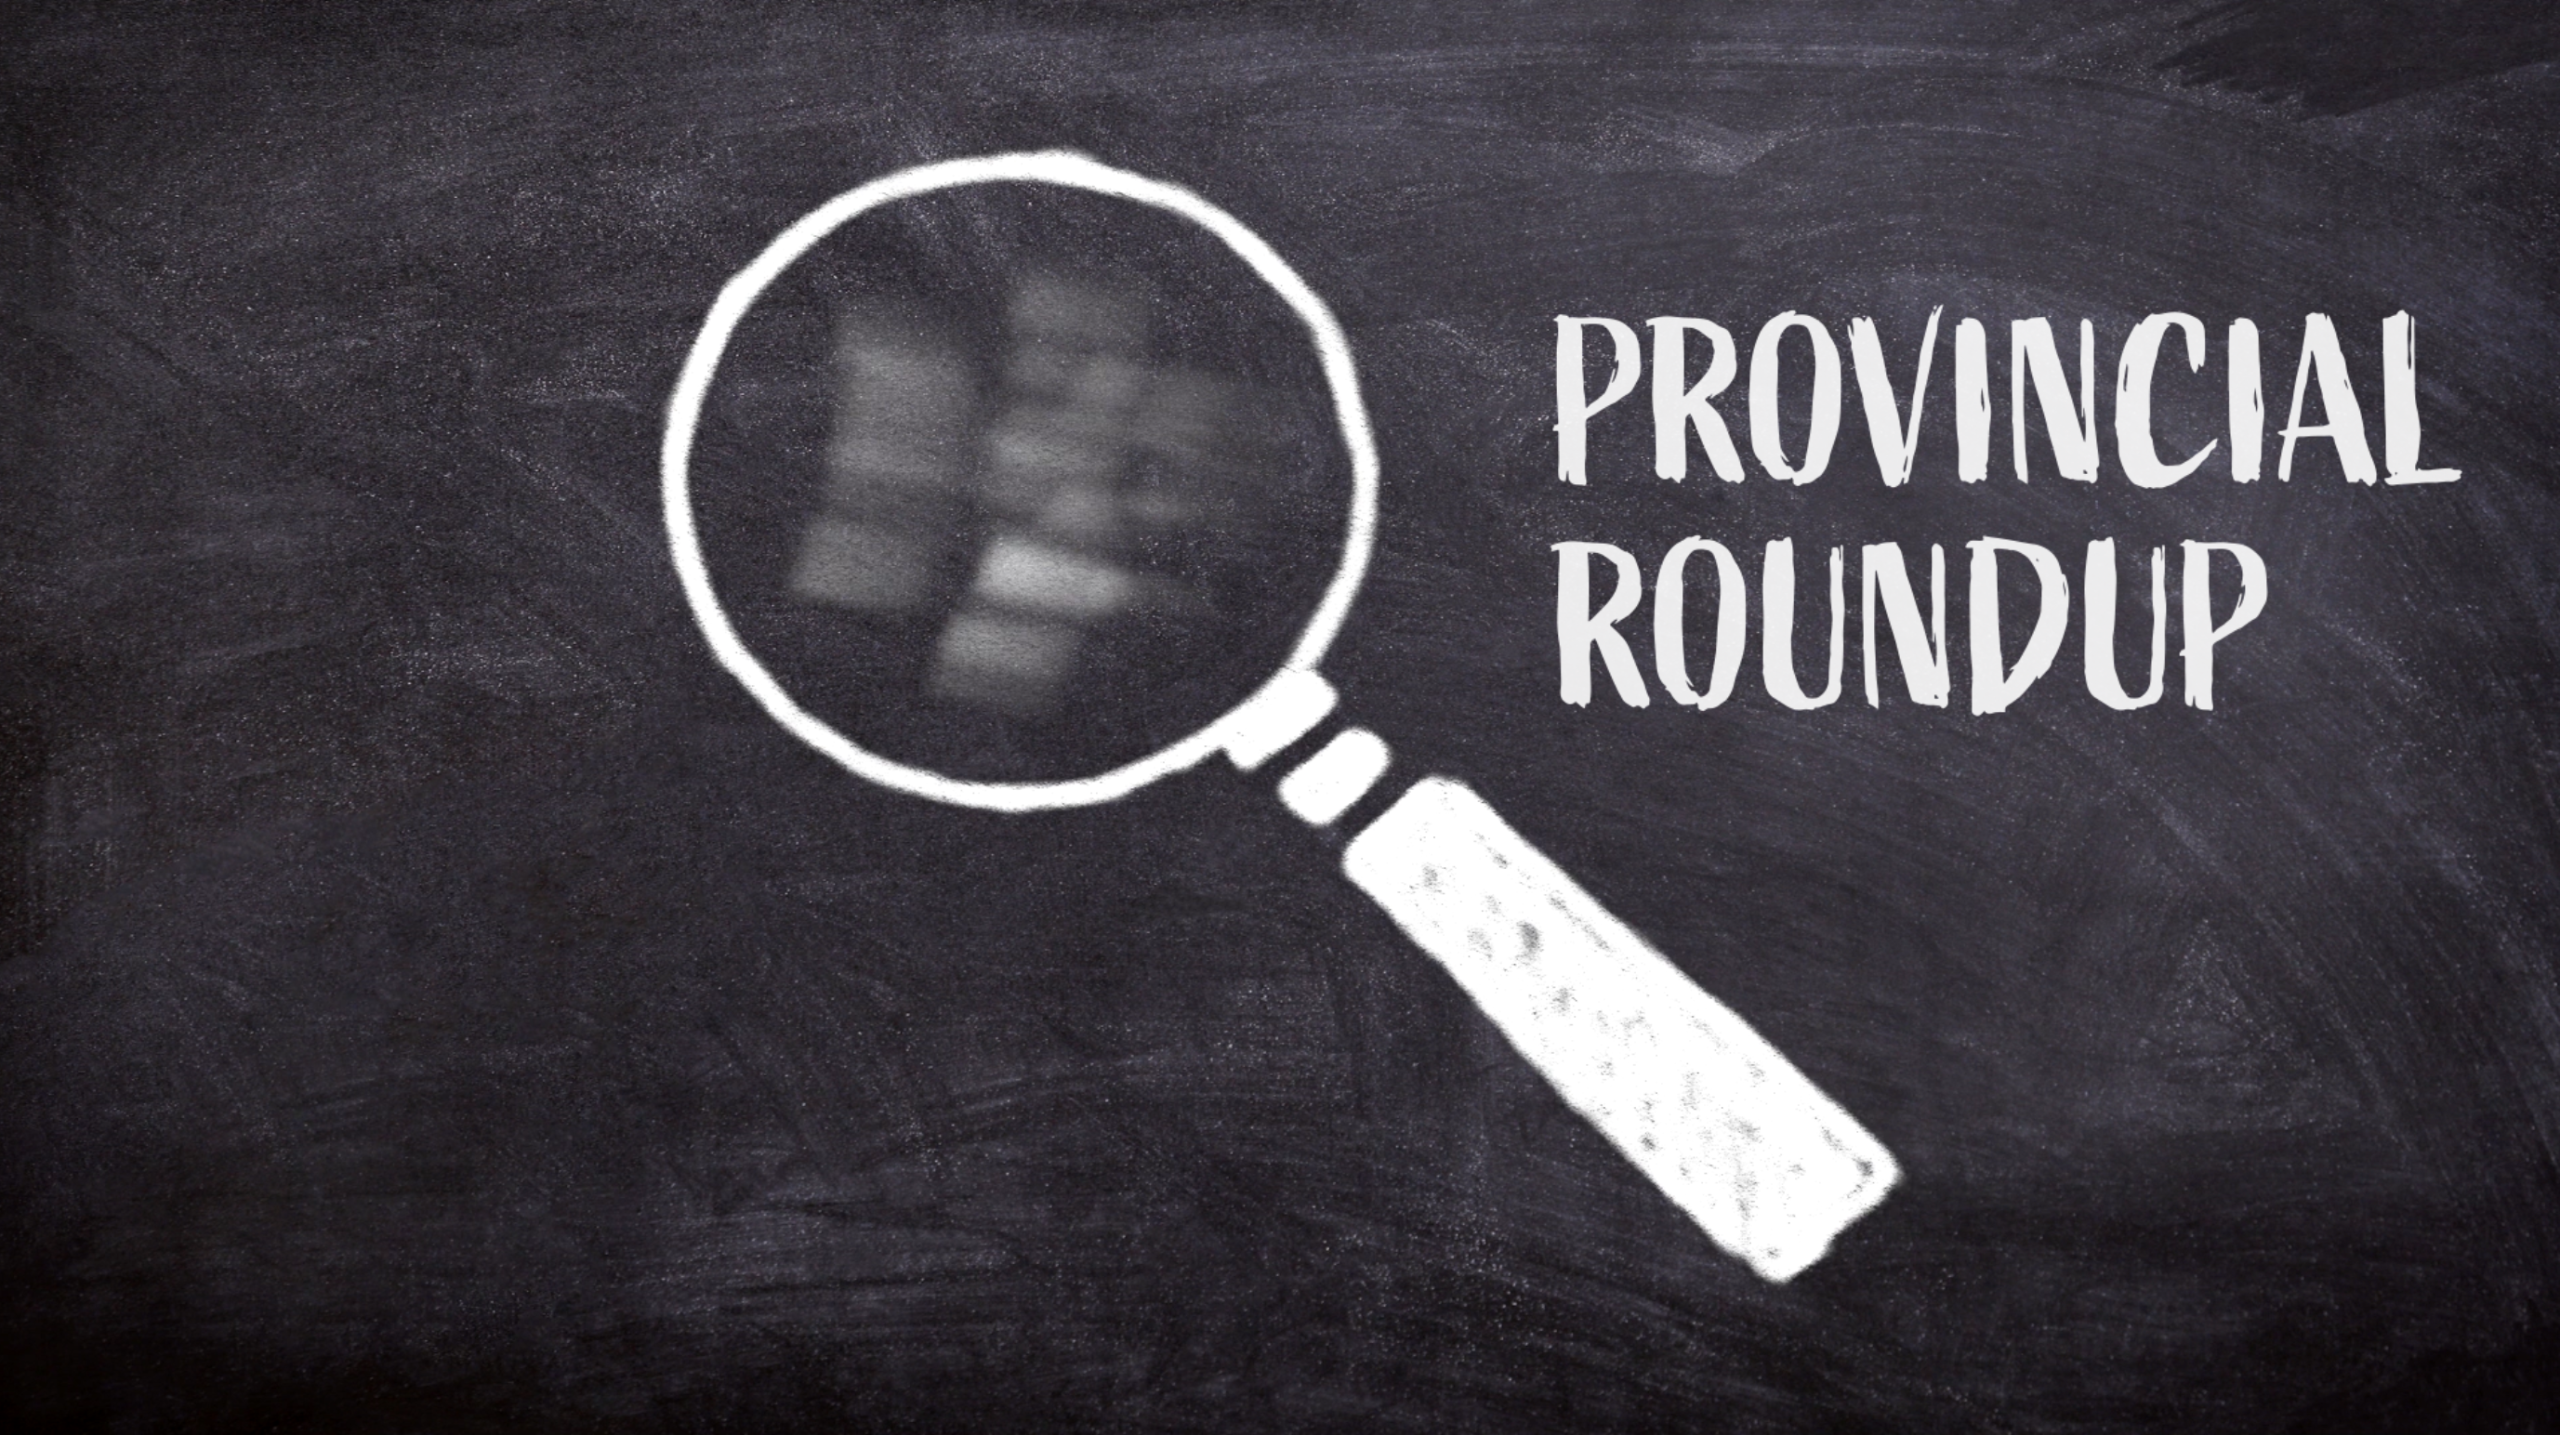 Provincial Roundup - Behind the Numbers